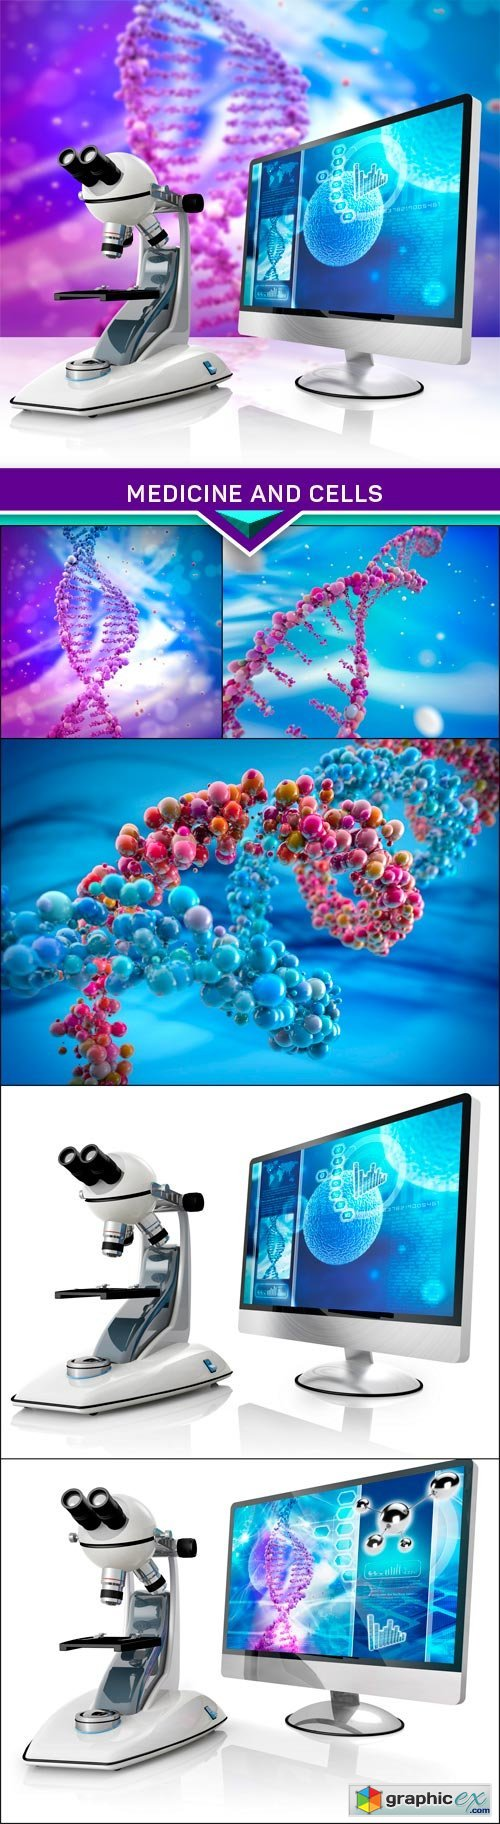 Medicine and cells in an abstract scientific background #2 6X JPEG